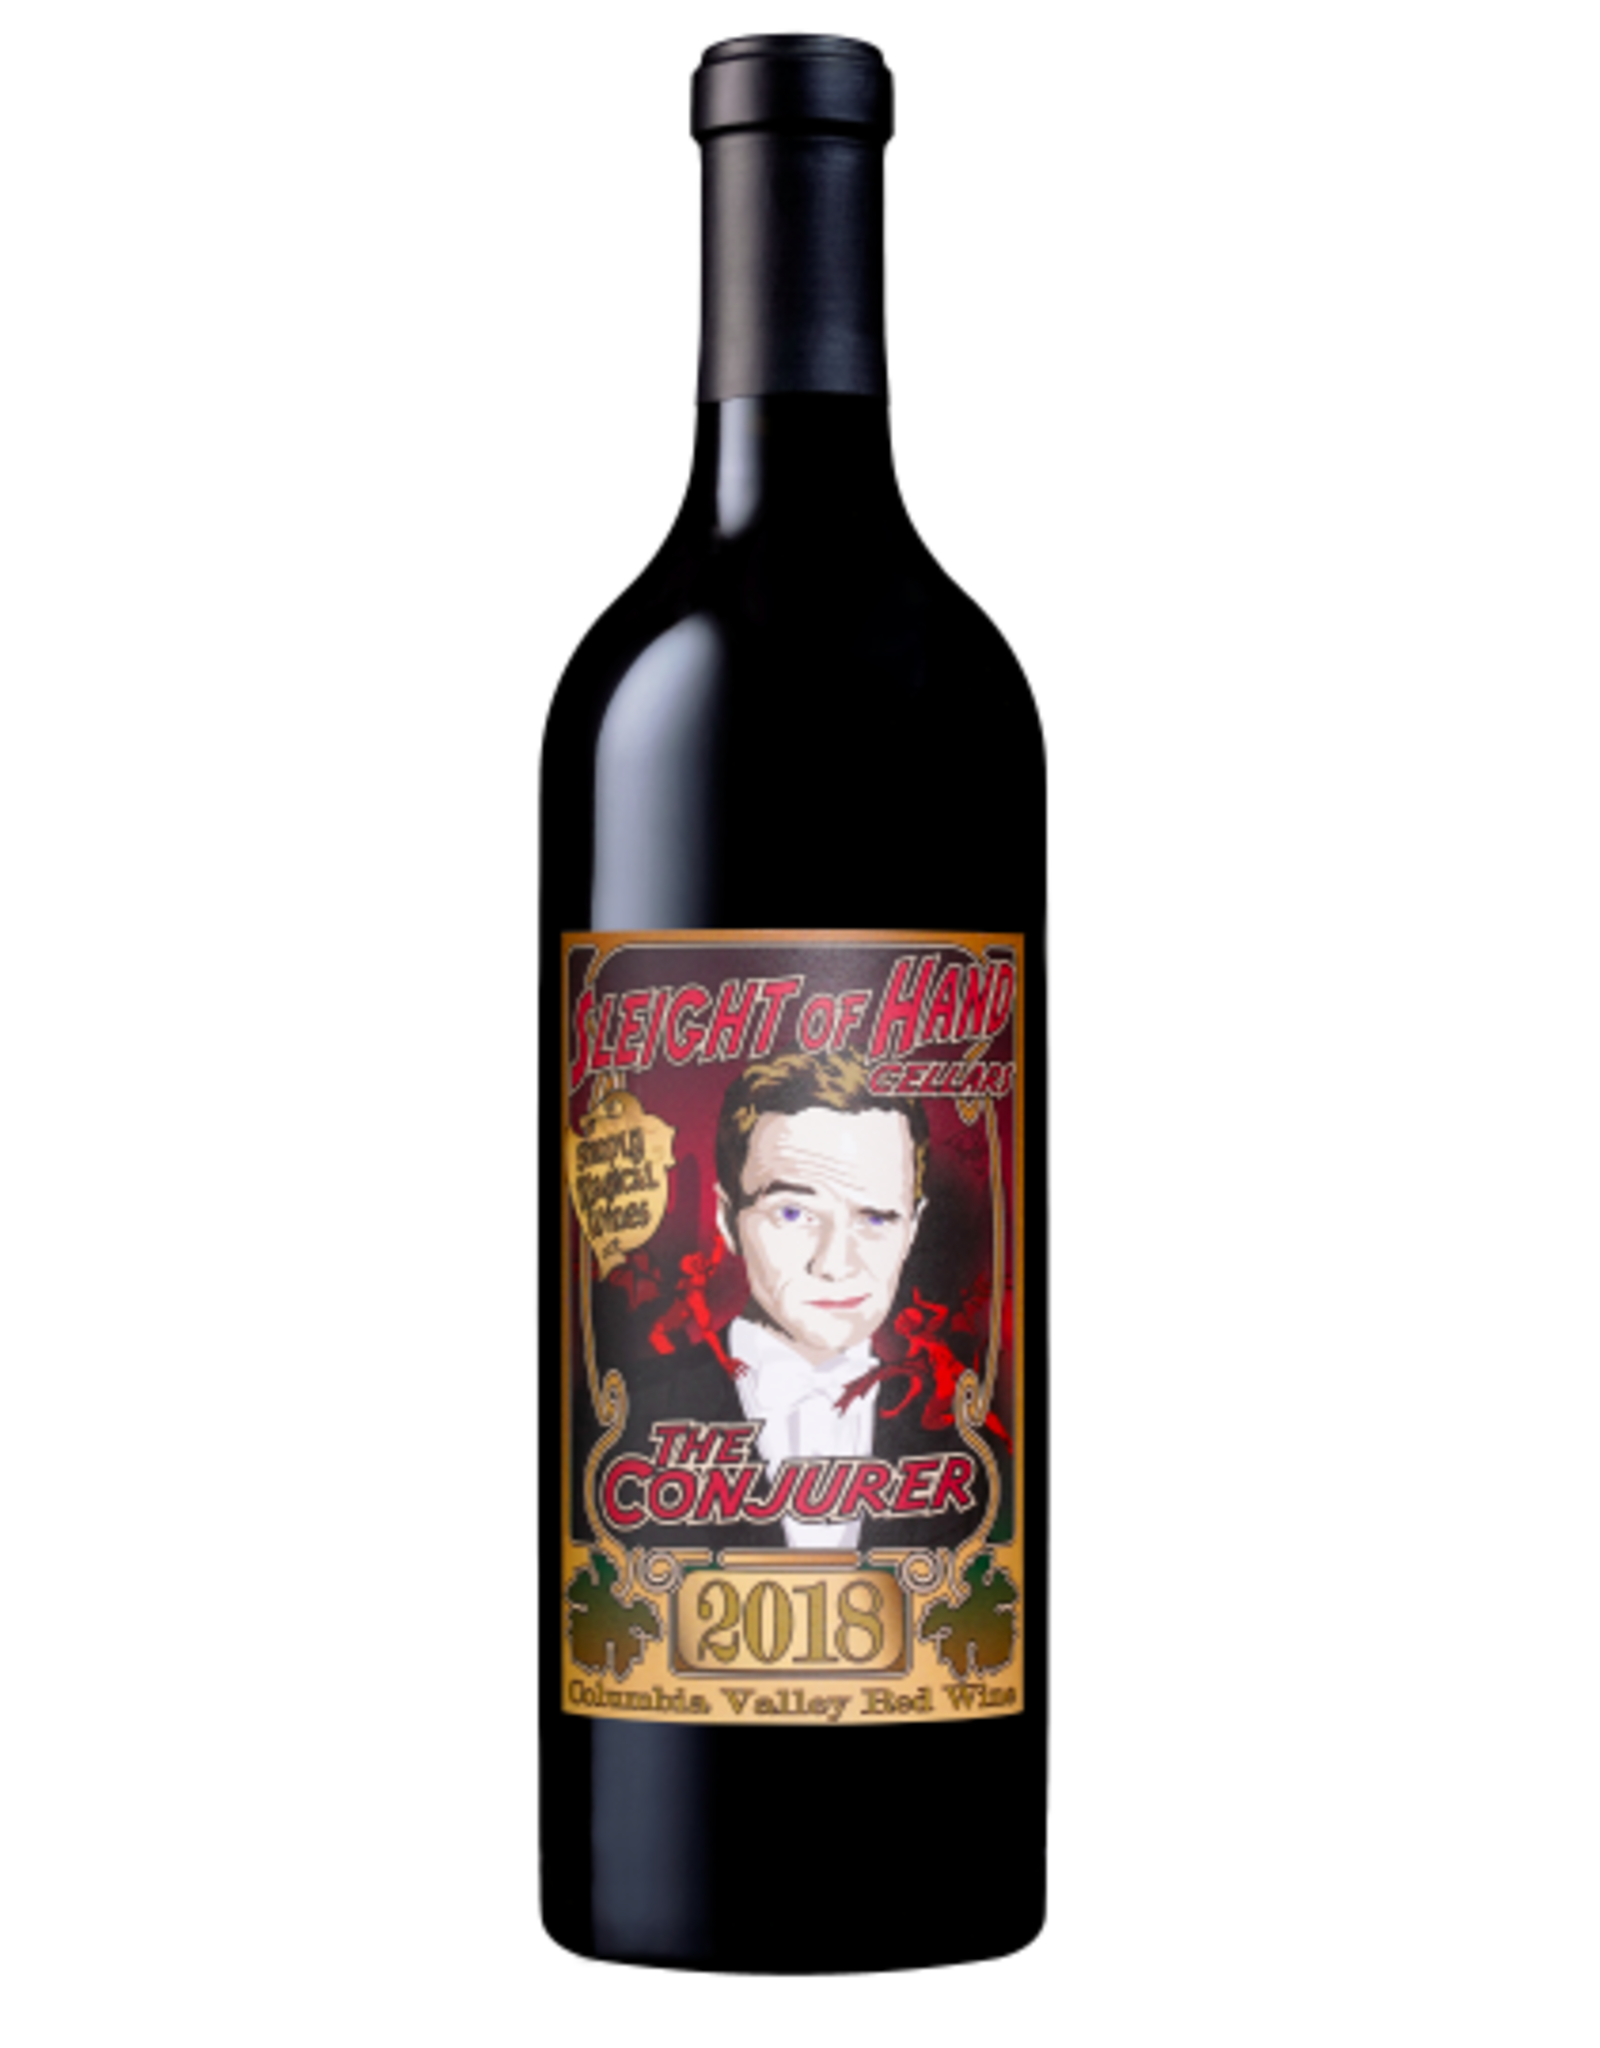 Sleight of Hand The Conjurer Bordeaux Style Blend Columbia Valley 2017